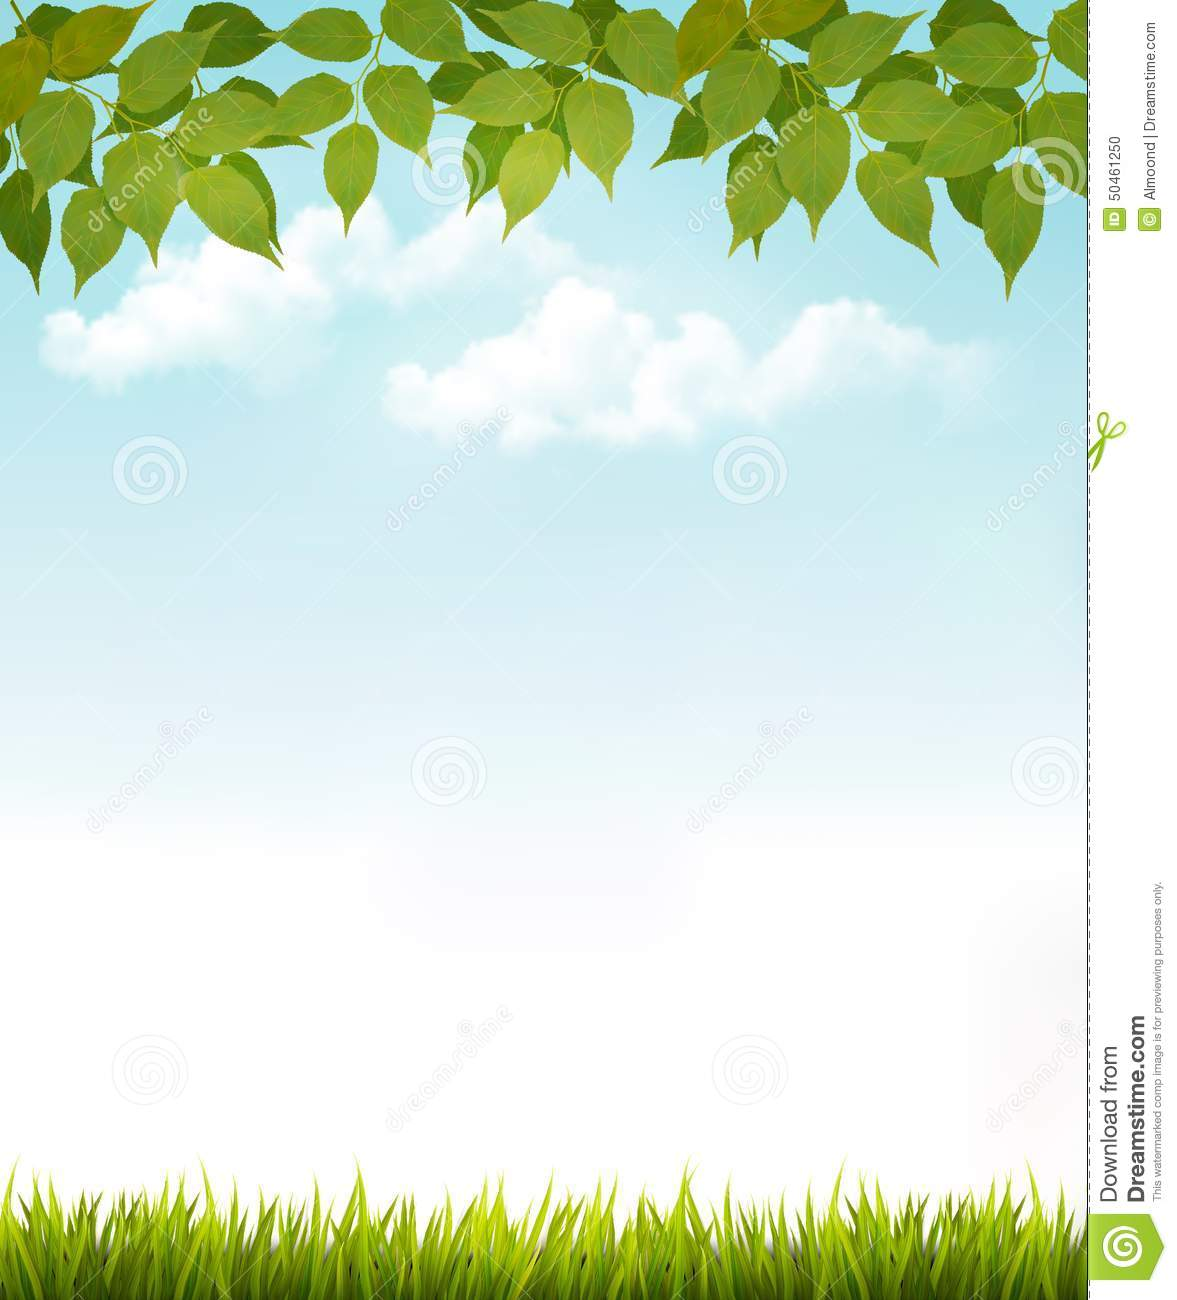 Nature background clipart banner free library Nature background clipart 8 » Clipart Station banner free library